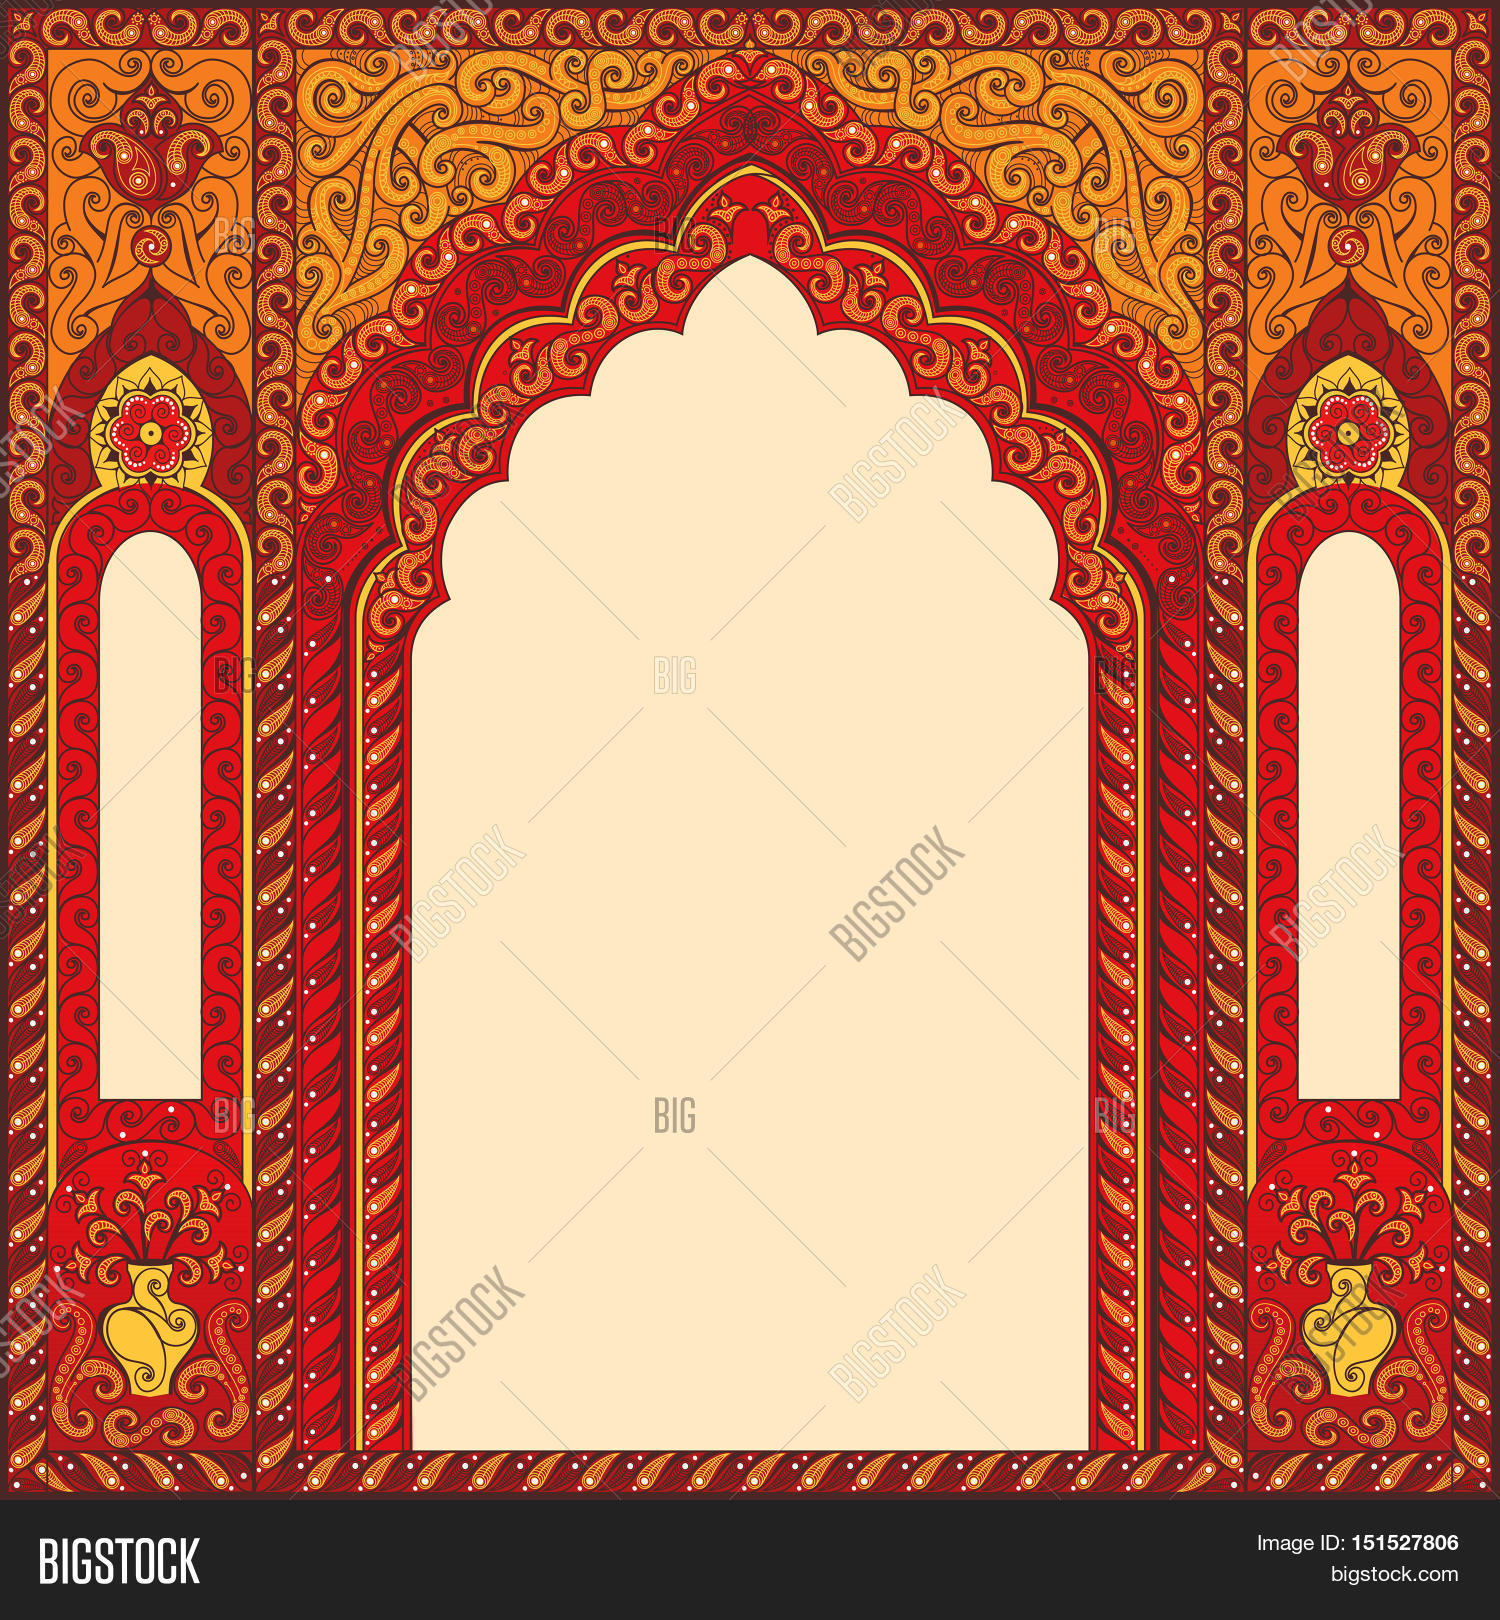 Eastern red frames arch template vector photo bigstock eastern red frames arch template design elements in oriental style floral frame for stopboris Choice Image